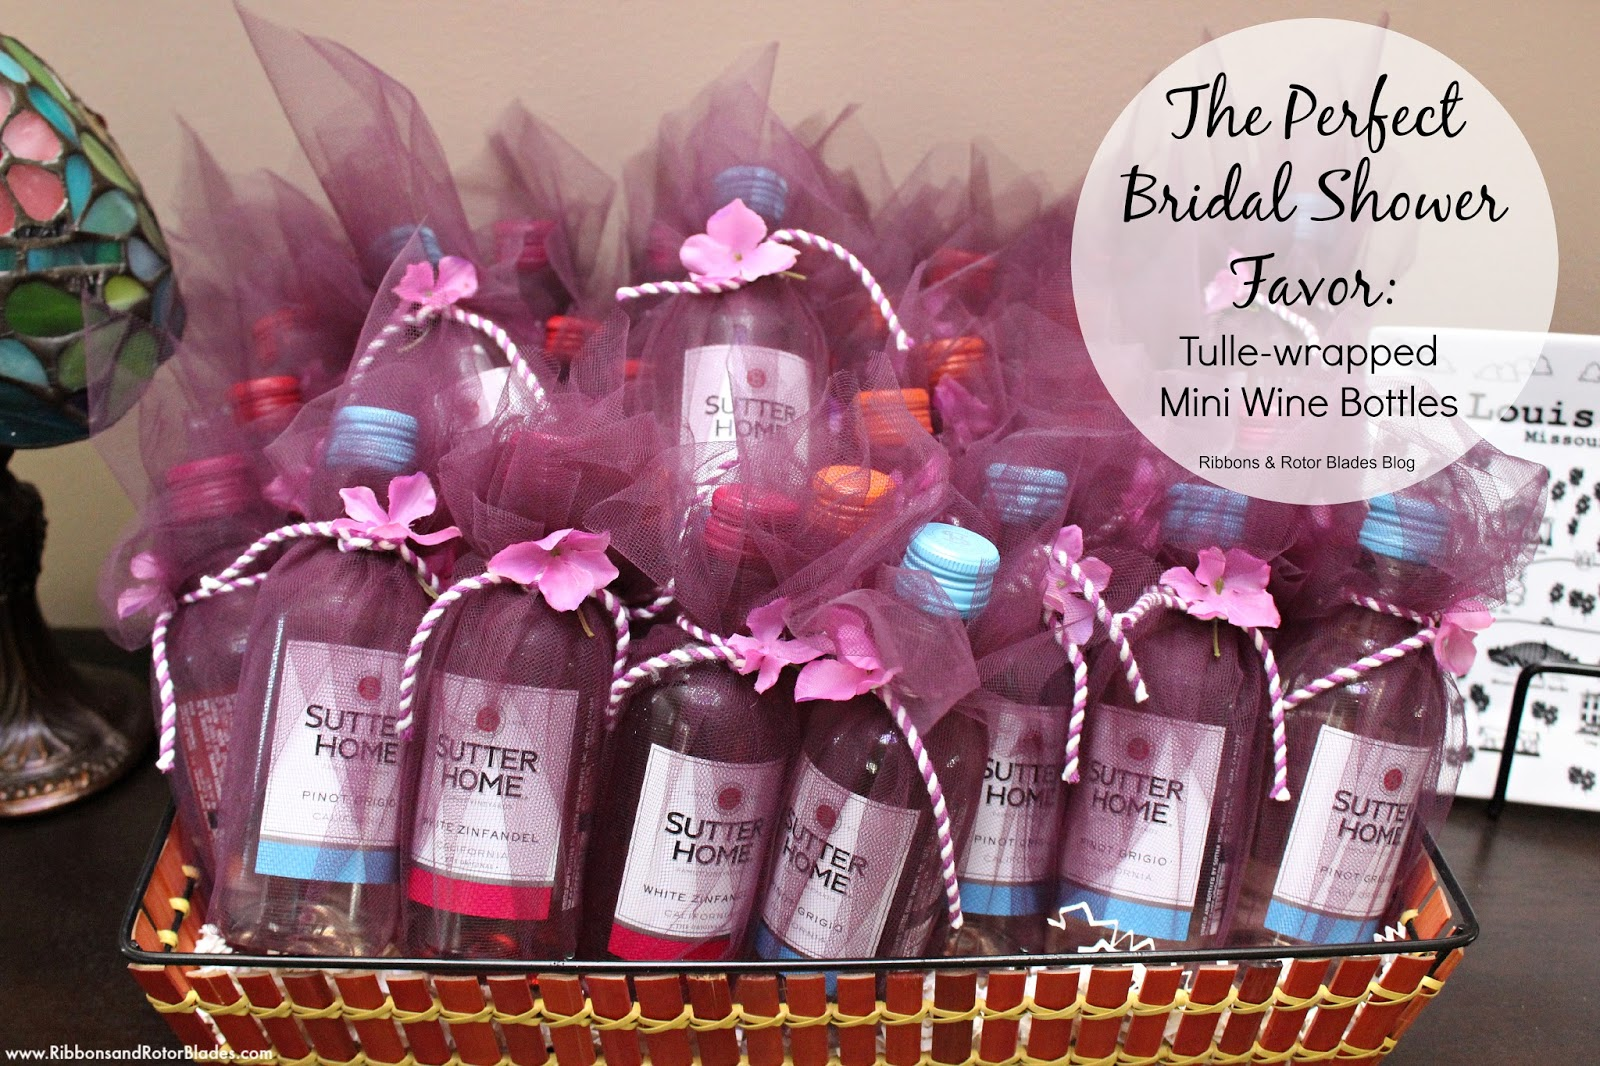 WEDDING FAVORS DUBAI SHOP | wedding favors